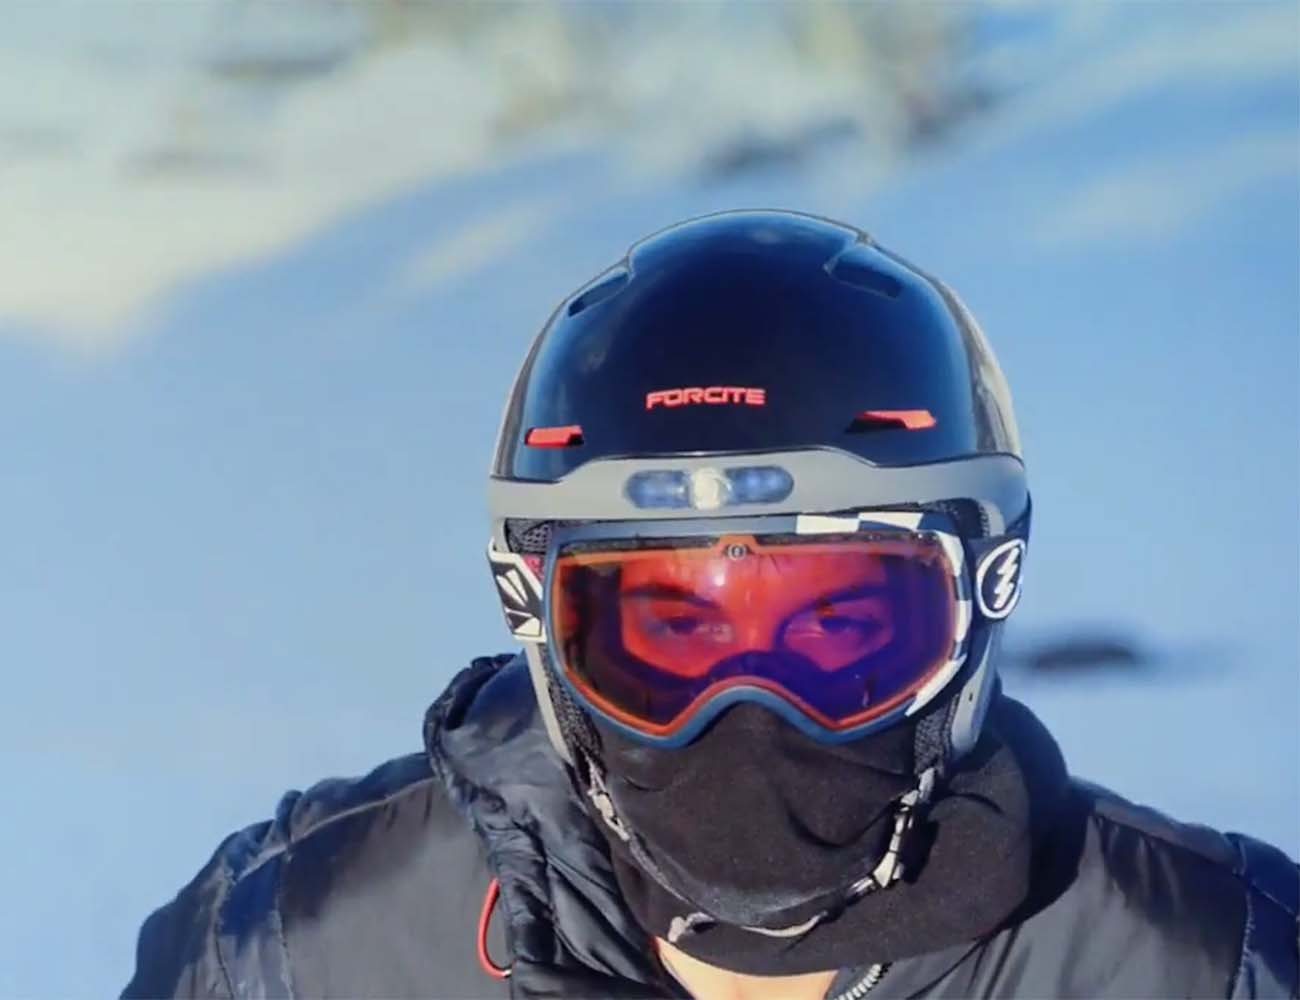 Forcite Alpine – Smart Helmet for Snow Sports